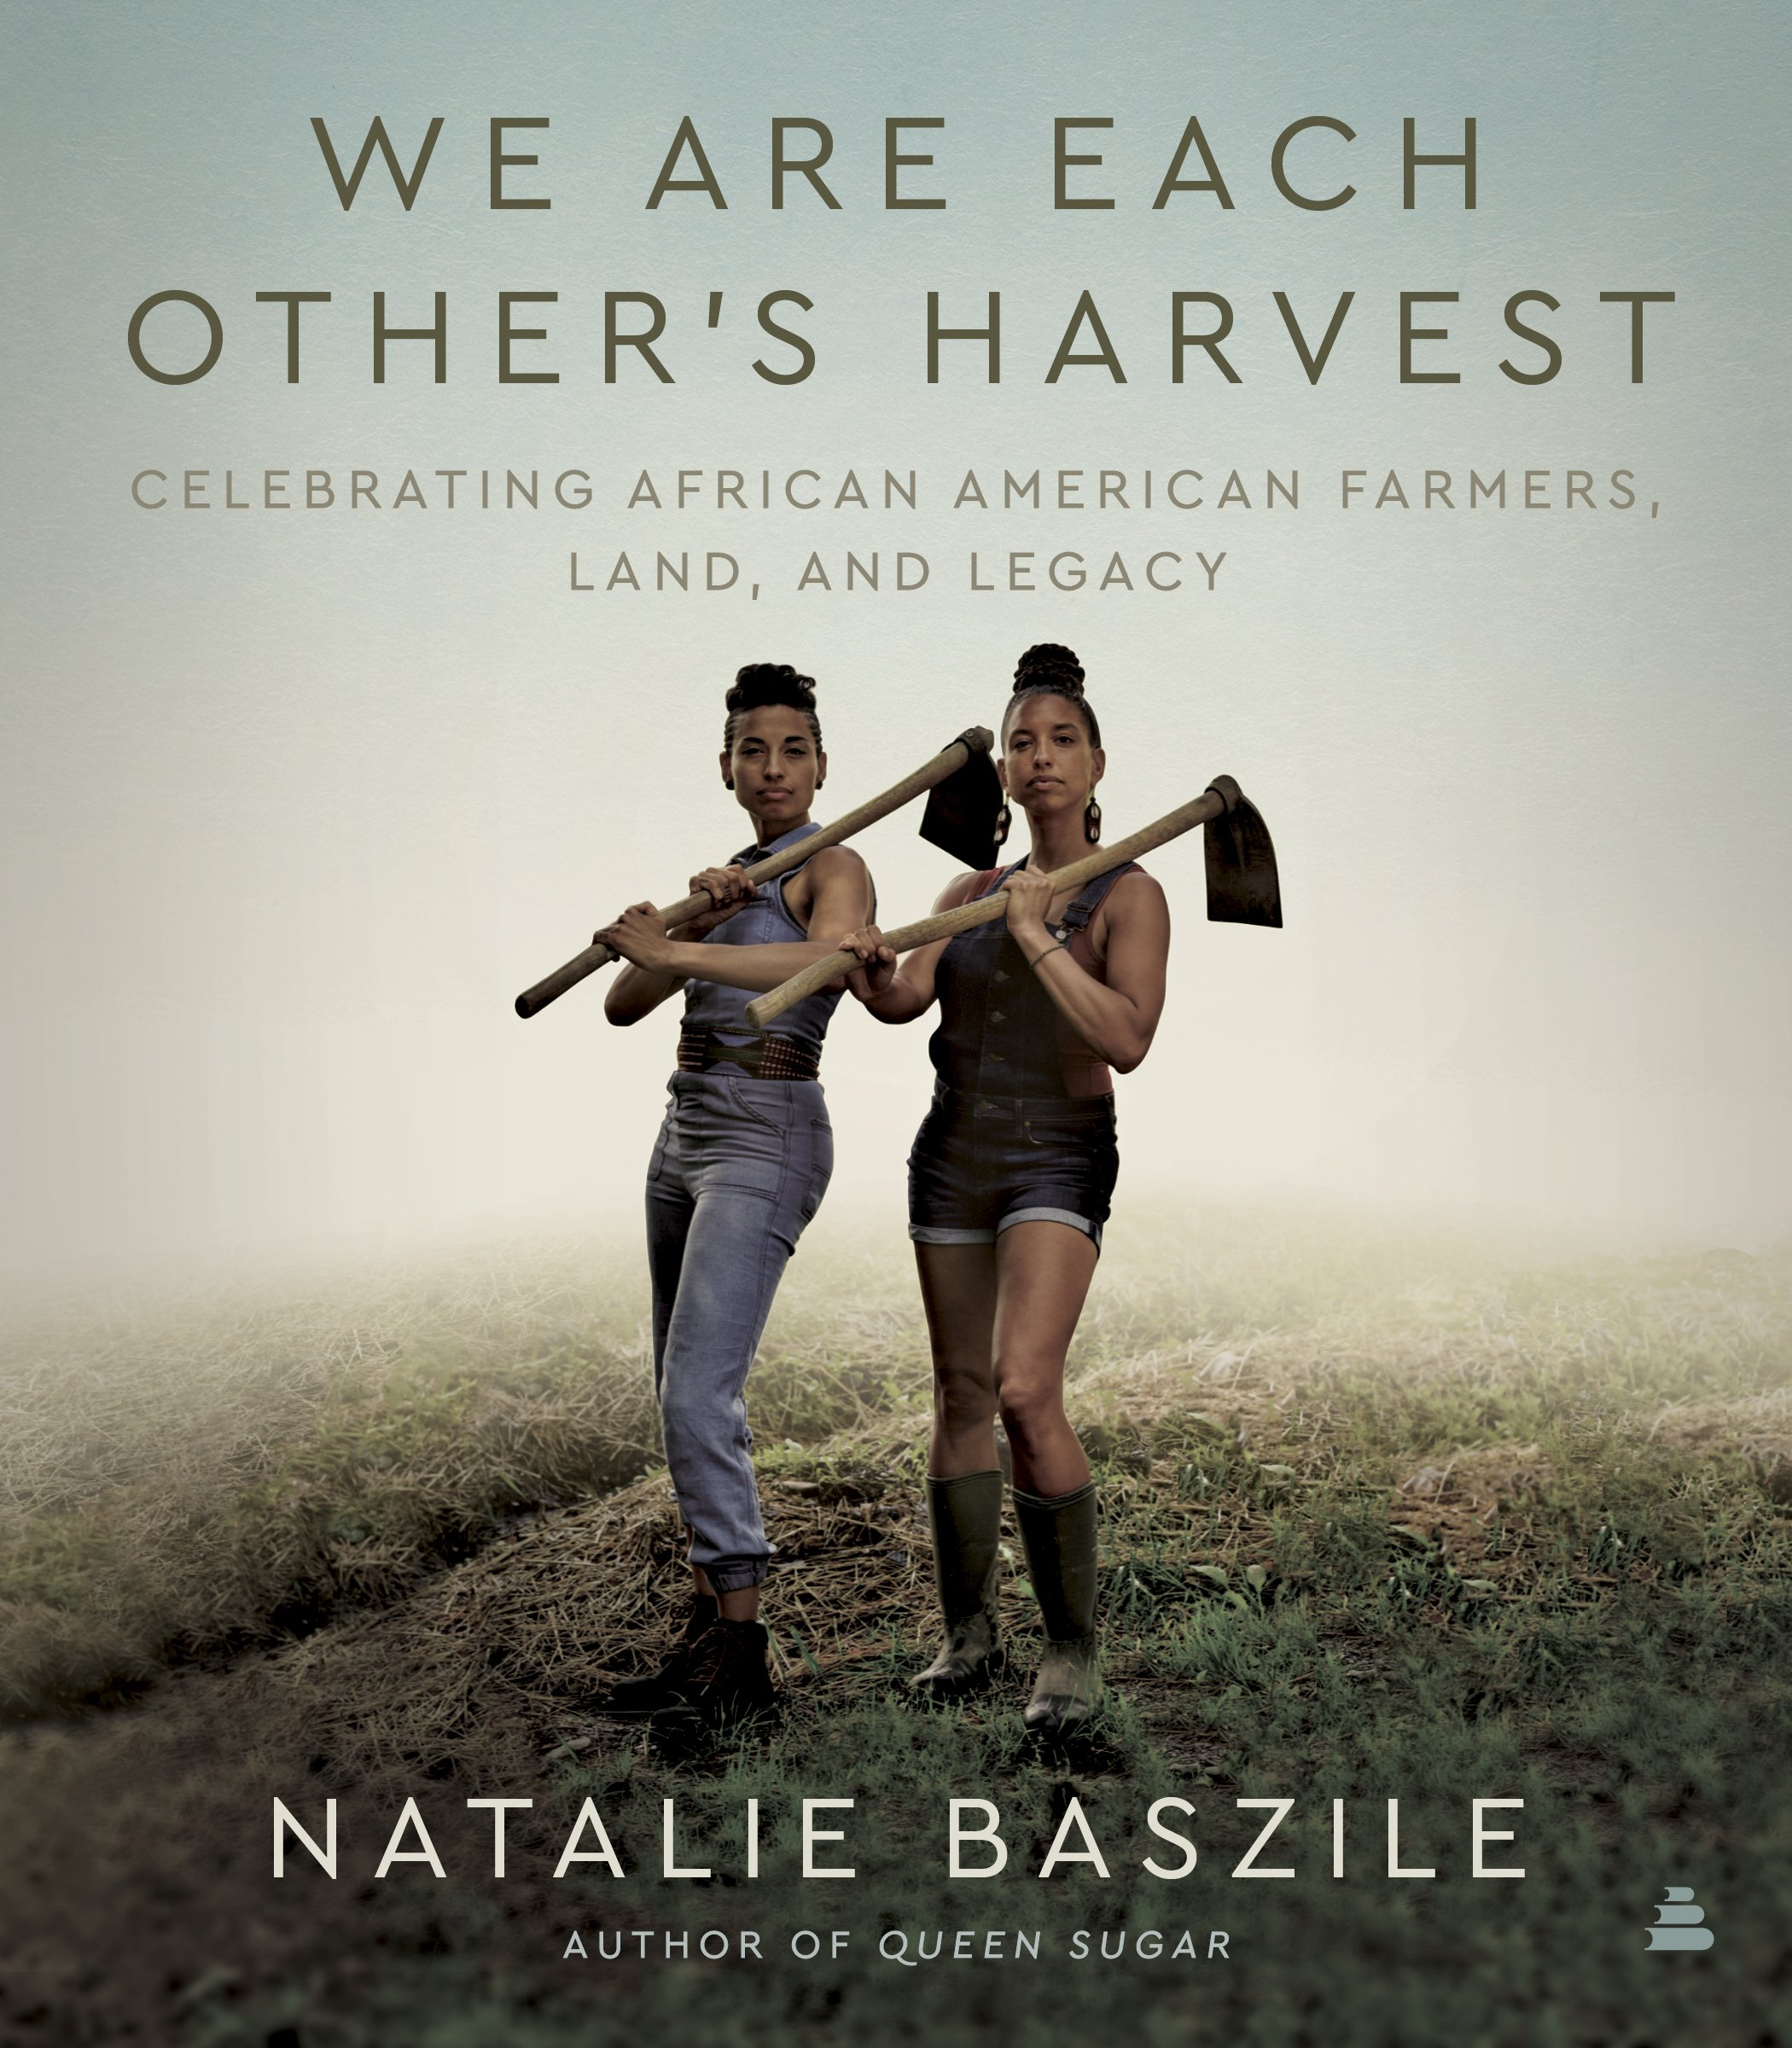 Review: A book celebrating Black American farming history